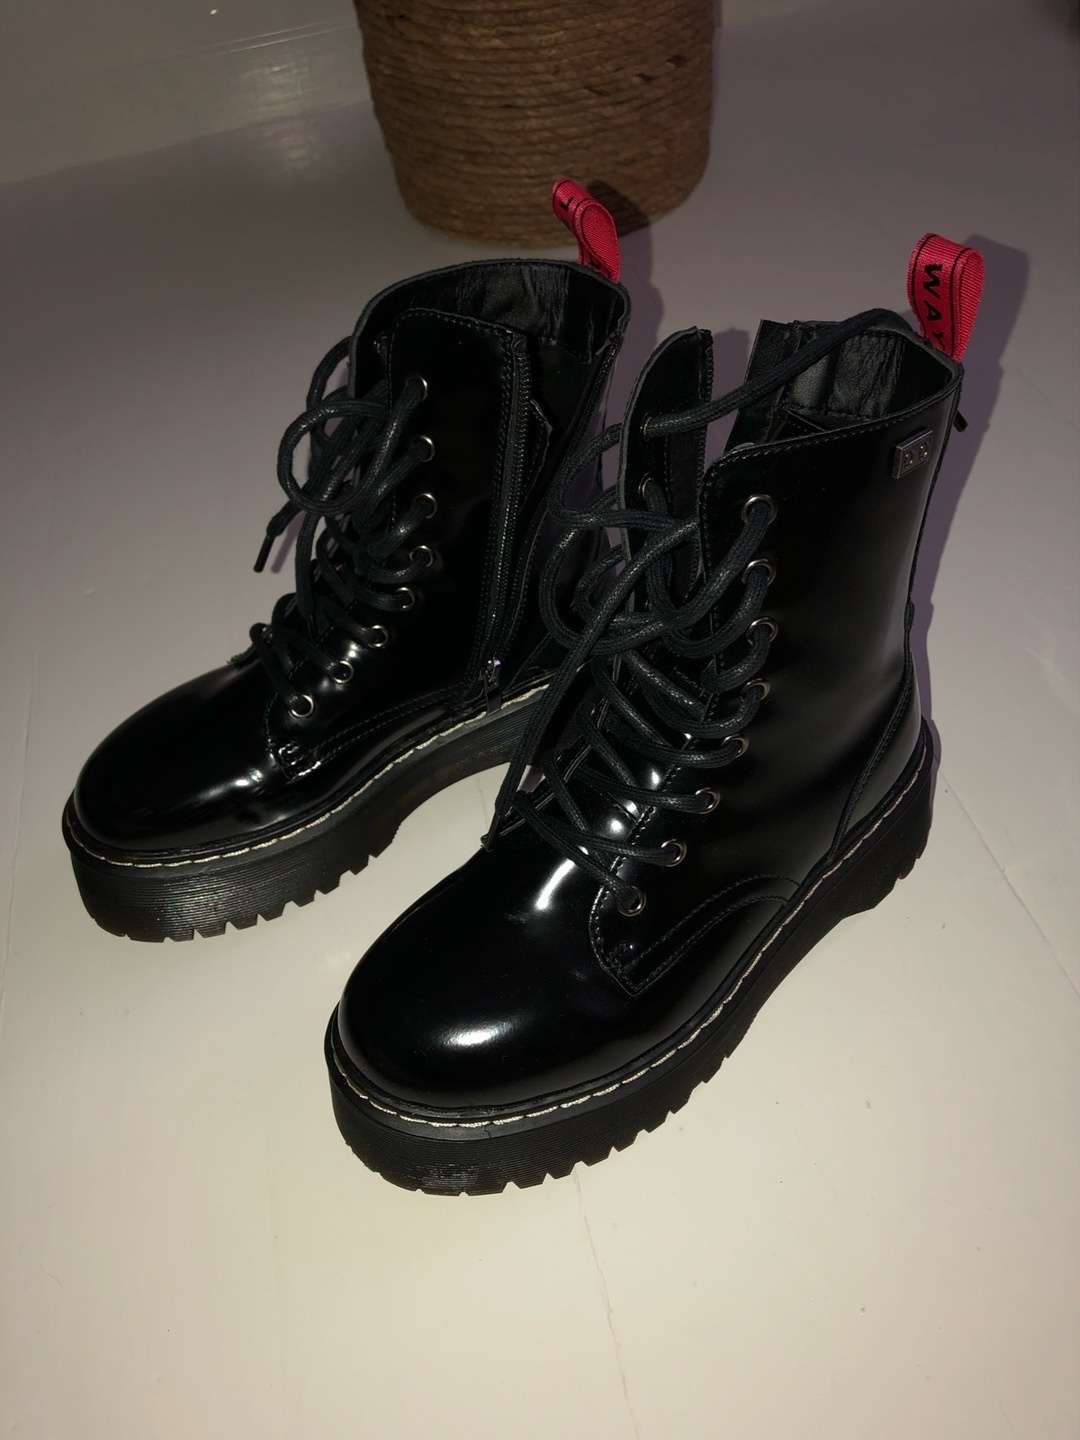 Women's boots - COOLWAY photo 2